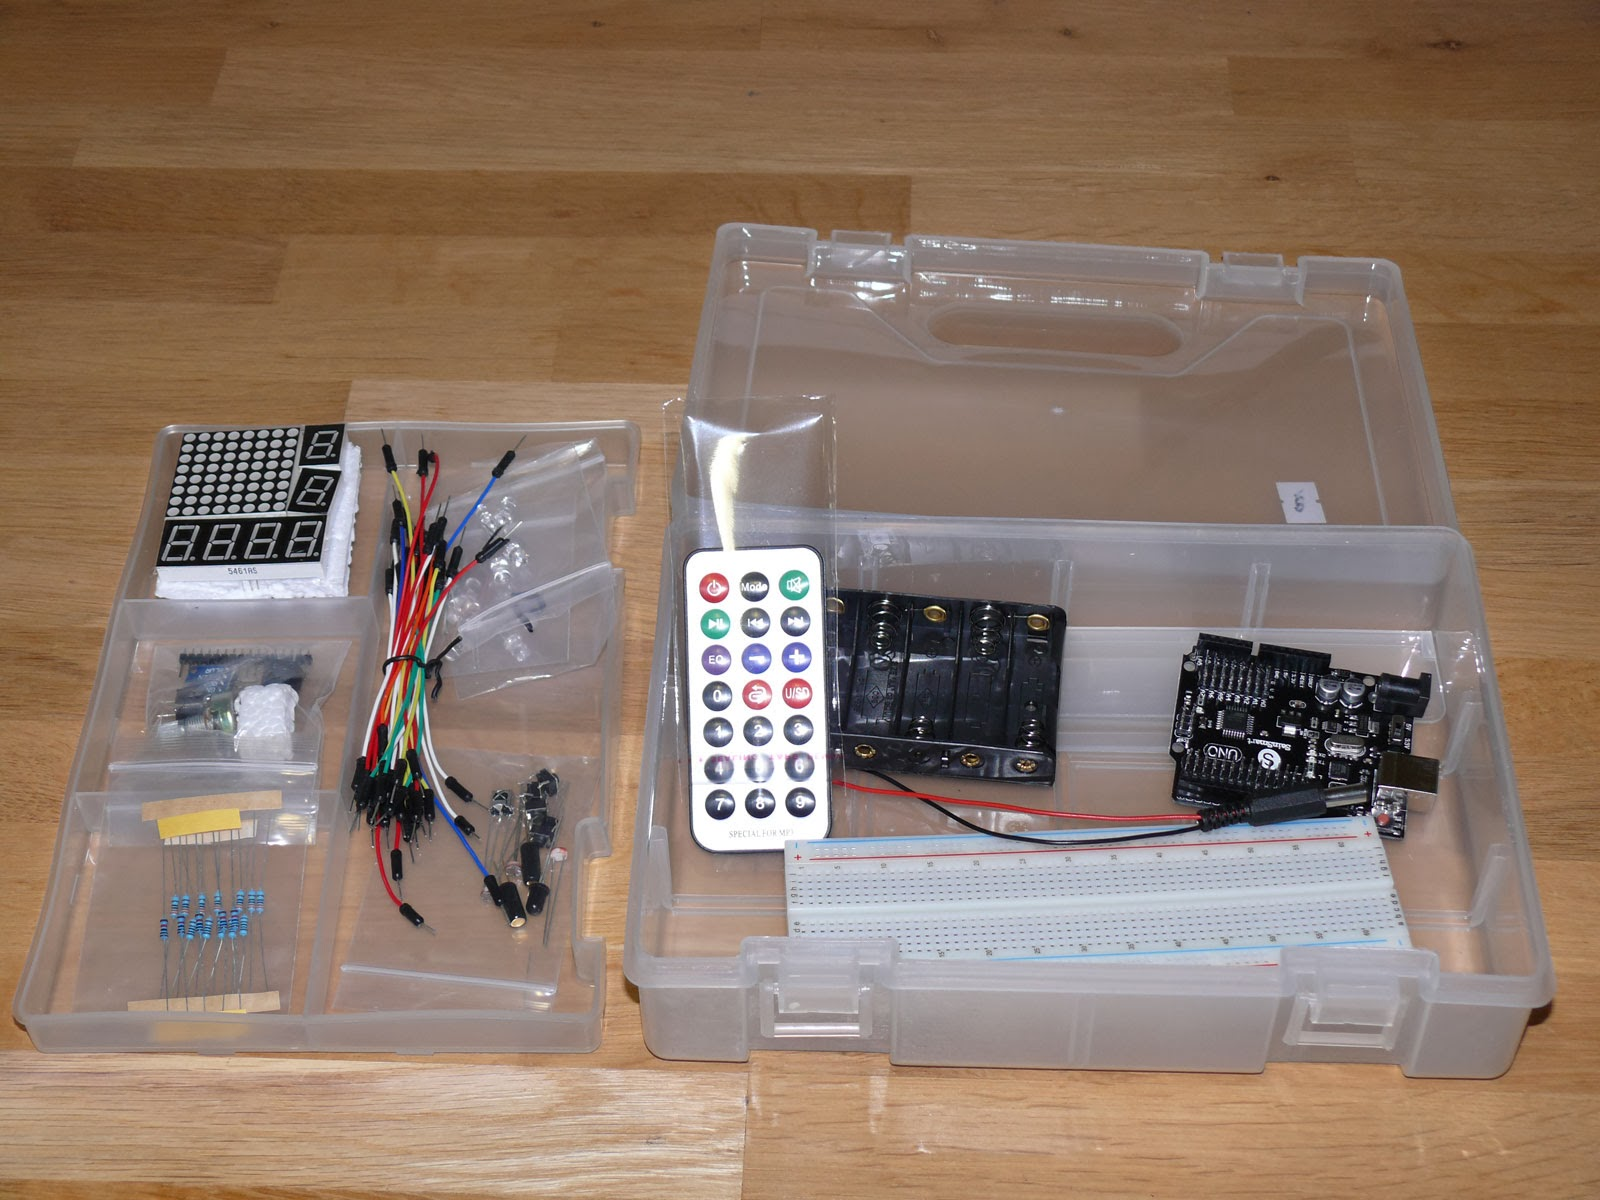 Arduino Starter Kit An Sketch Tutorial Lesson 3 Breadboards And Leds I Decided To Try A Very Simple Project Start With Using The Http Arduinocc En Blinkwithoutdelay Sample However Wiring Layout Doesnt